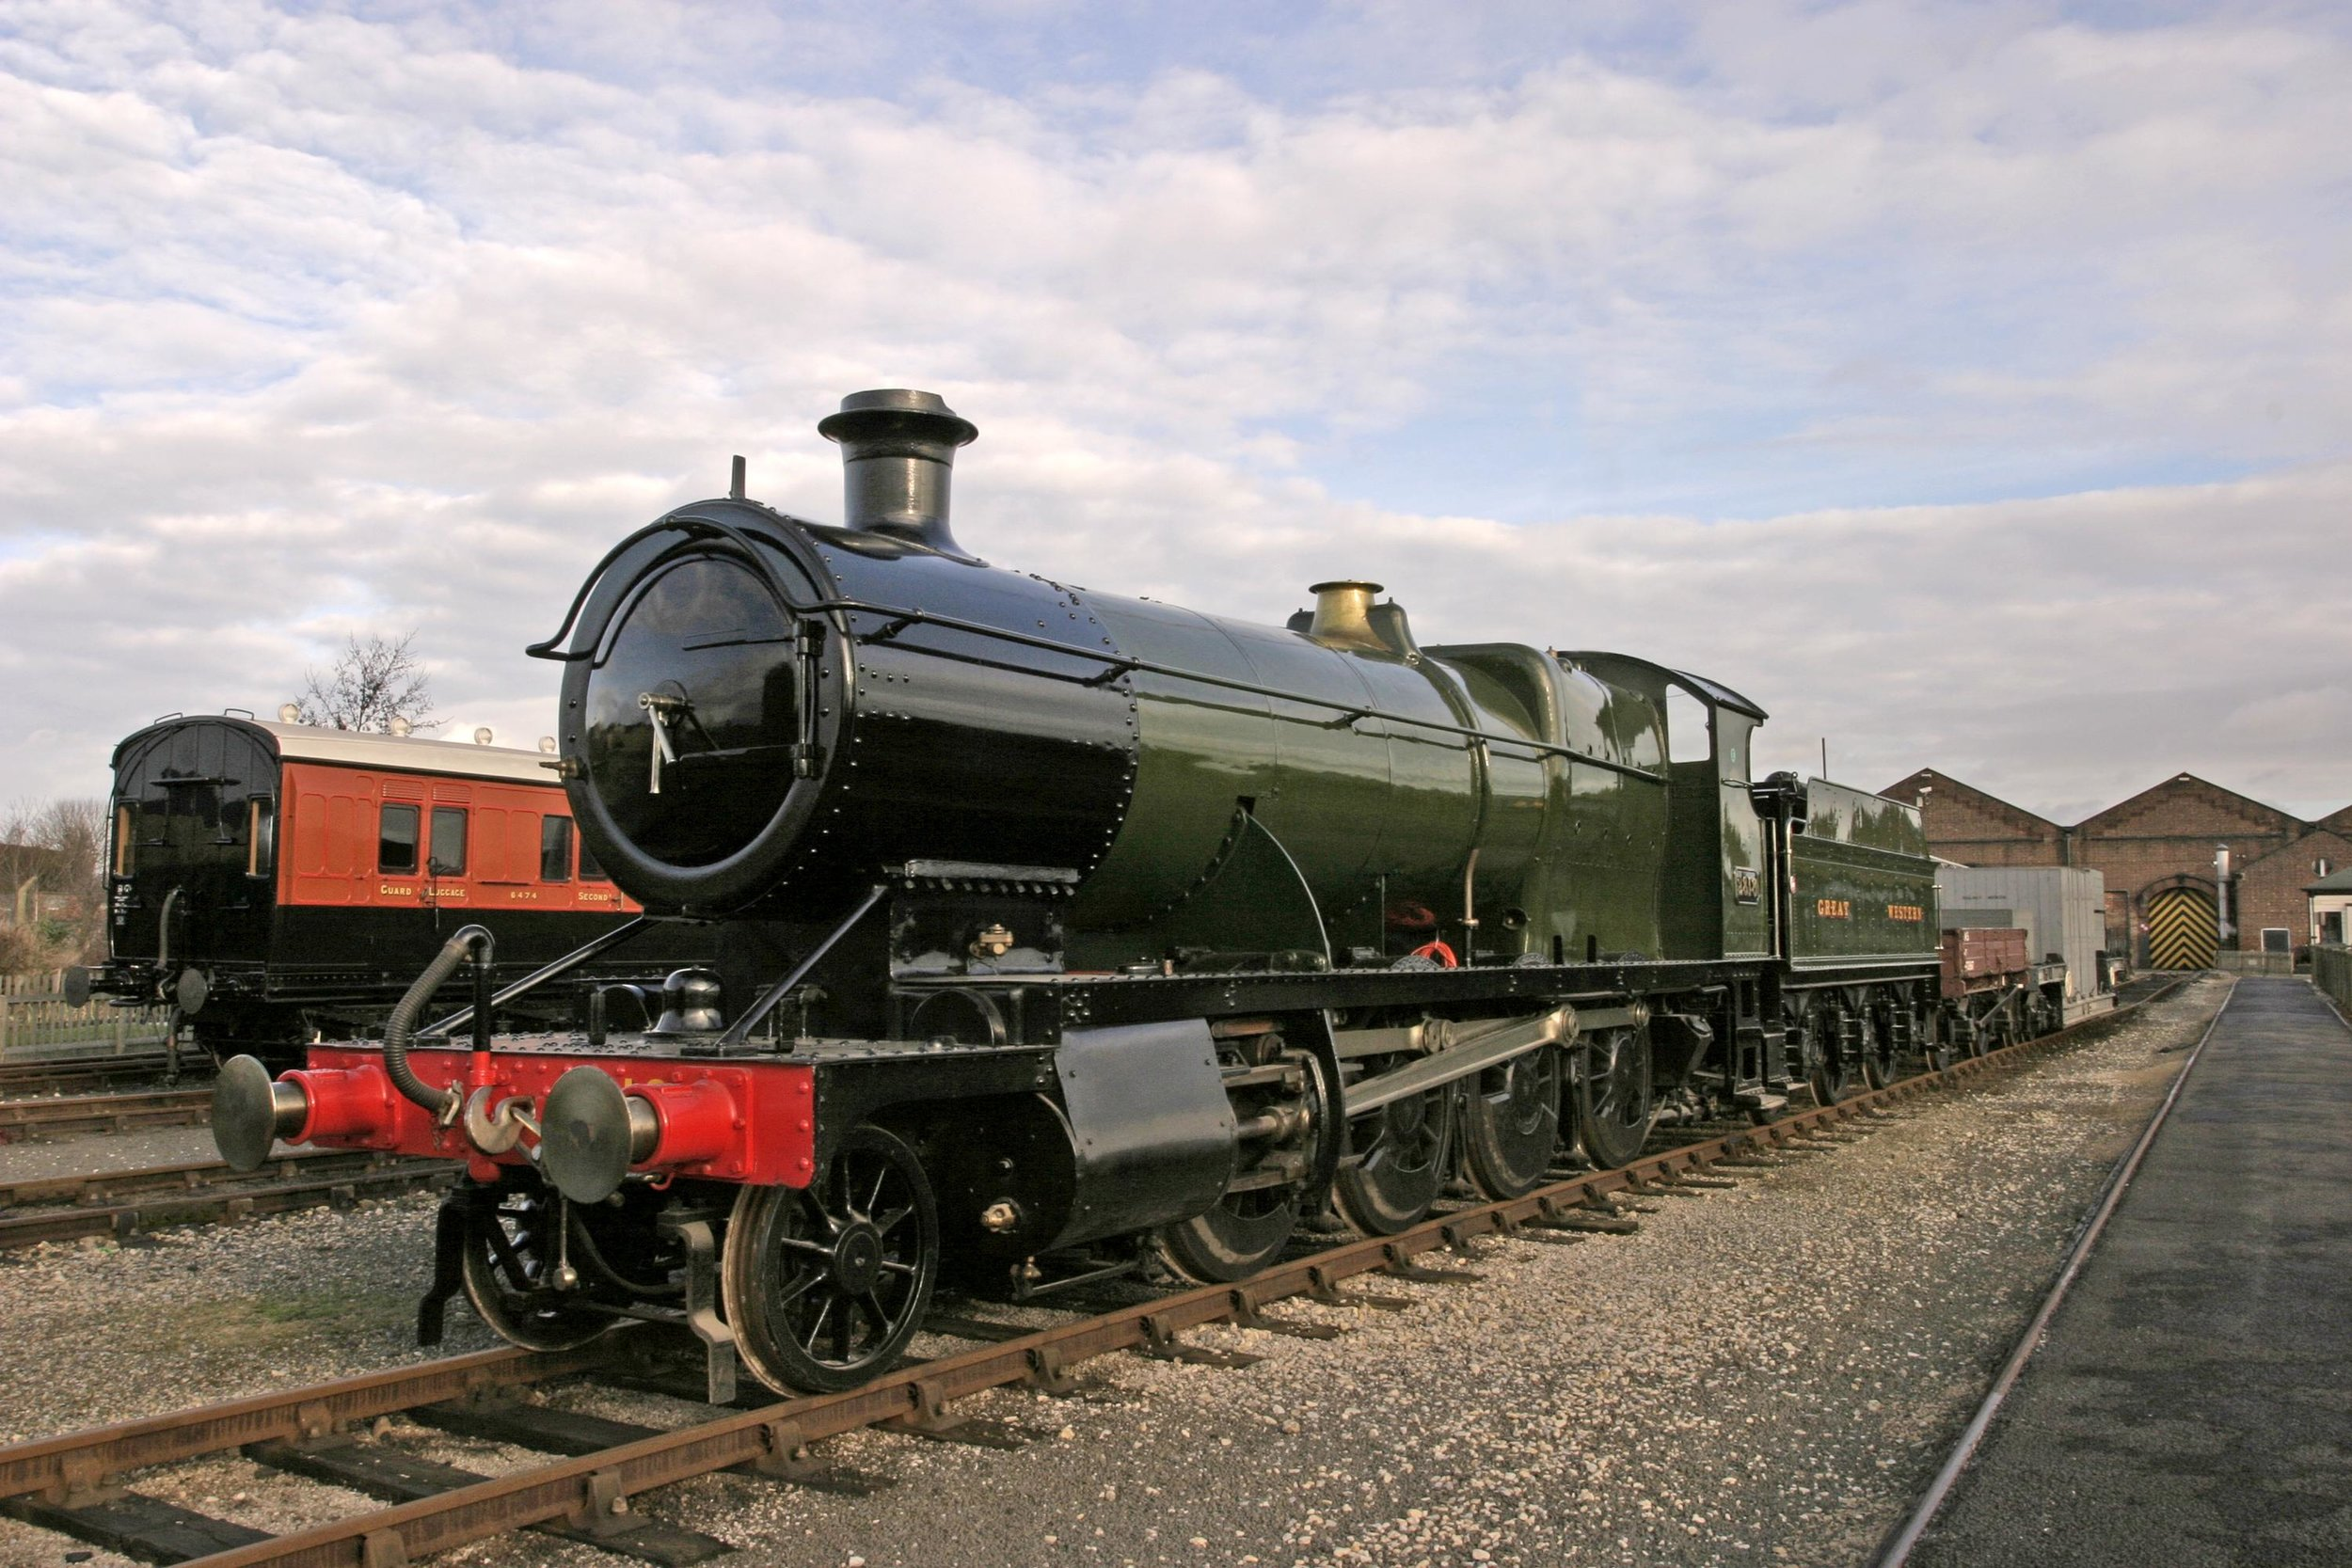 GWR '28XX' No. 2818 will move to its new home in Swindon on August 21, over a year after it was announced that the Churchward 2-8-0 was being disposed from the National Collection. NRM